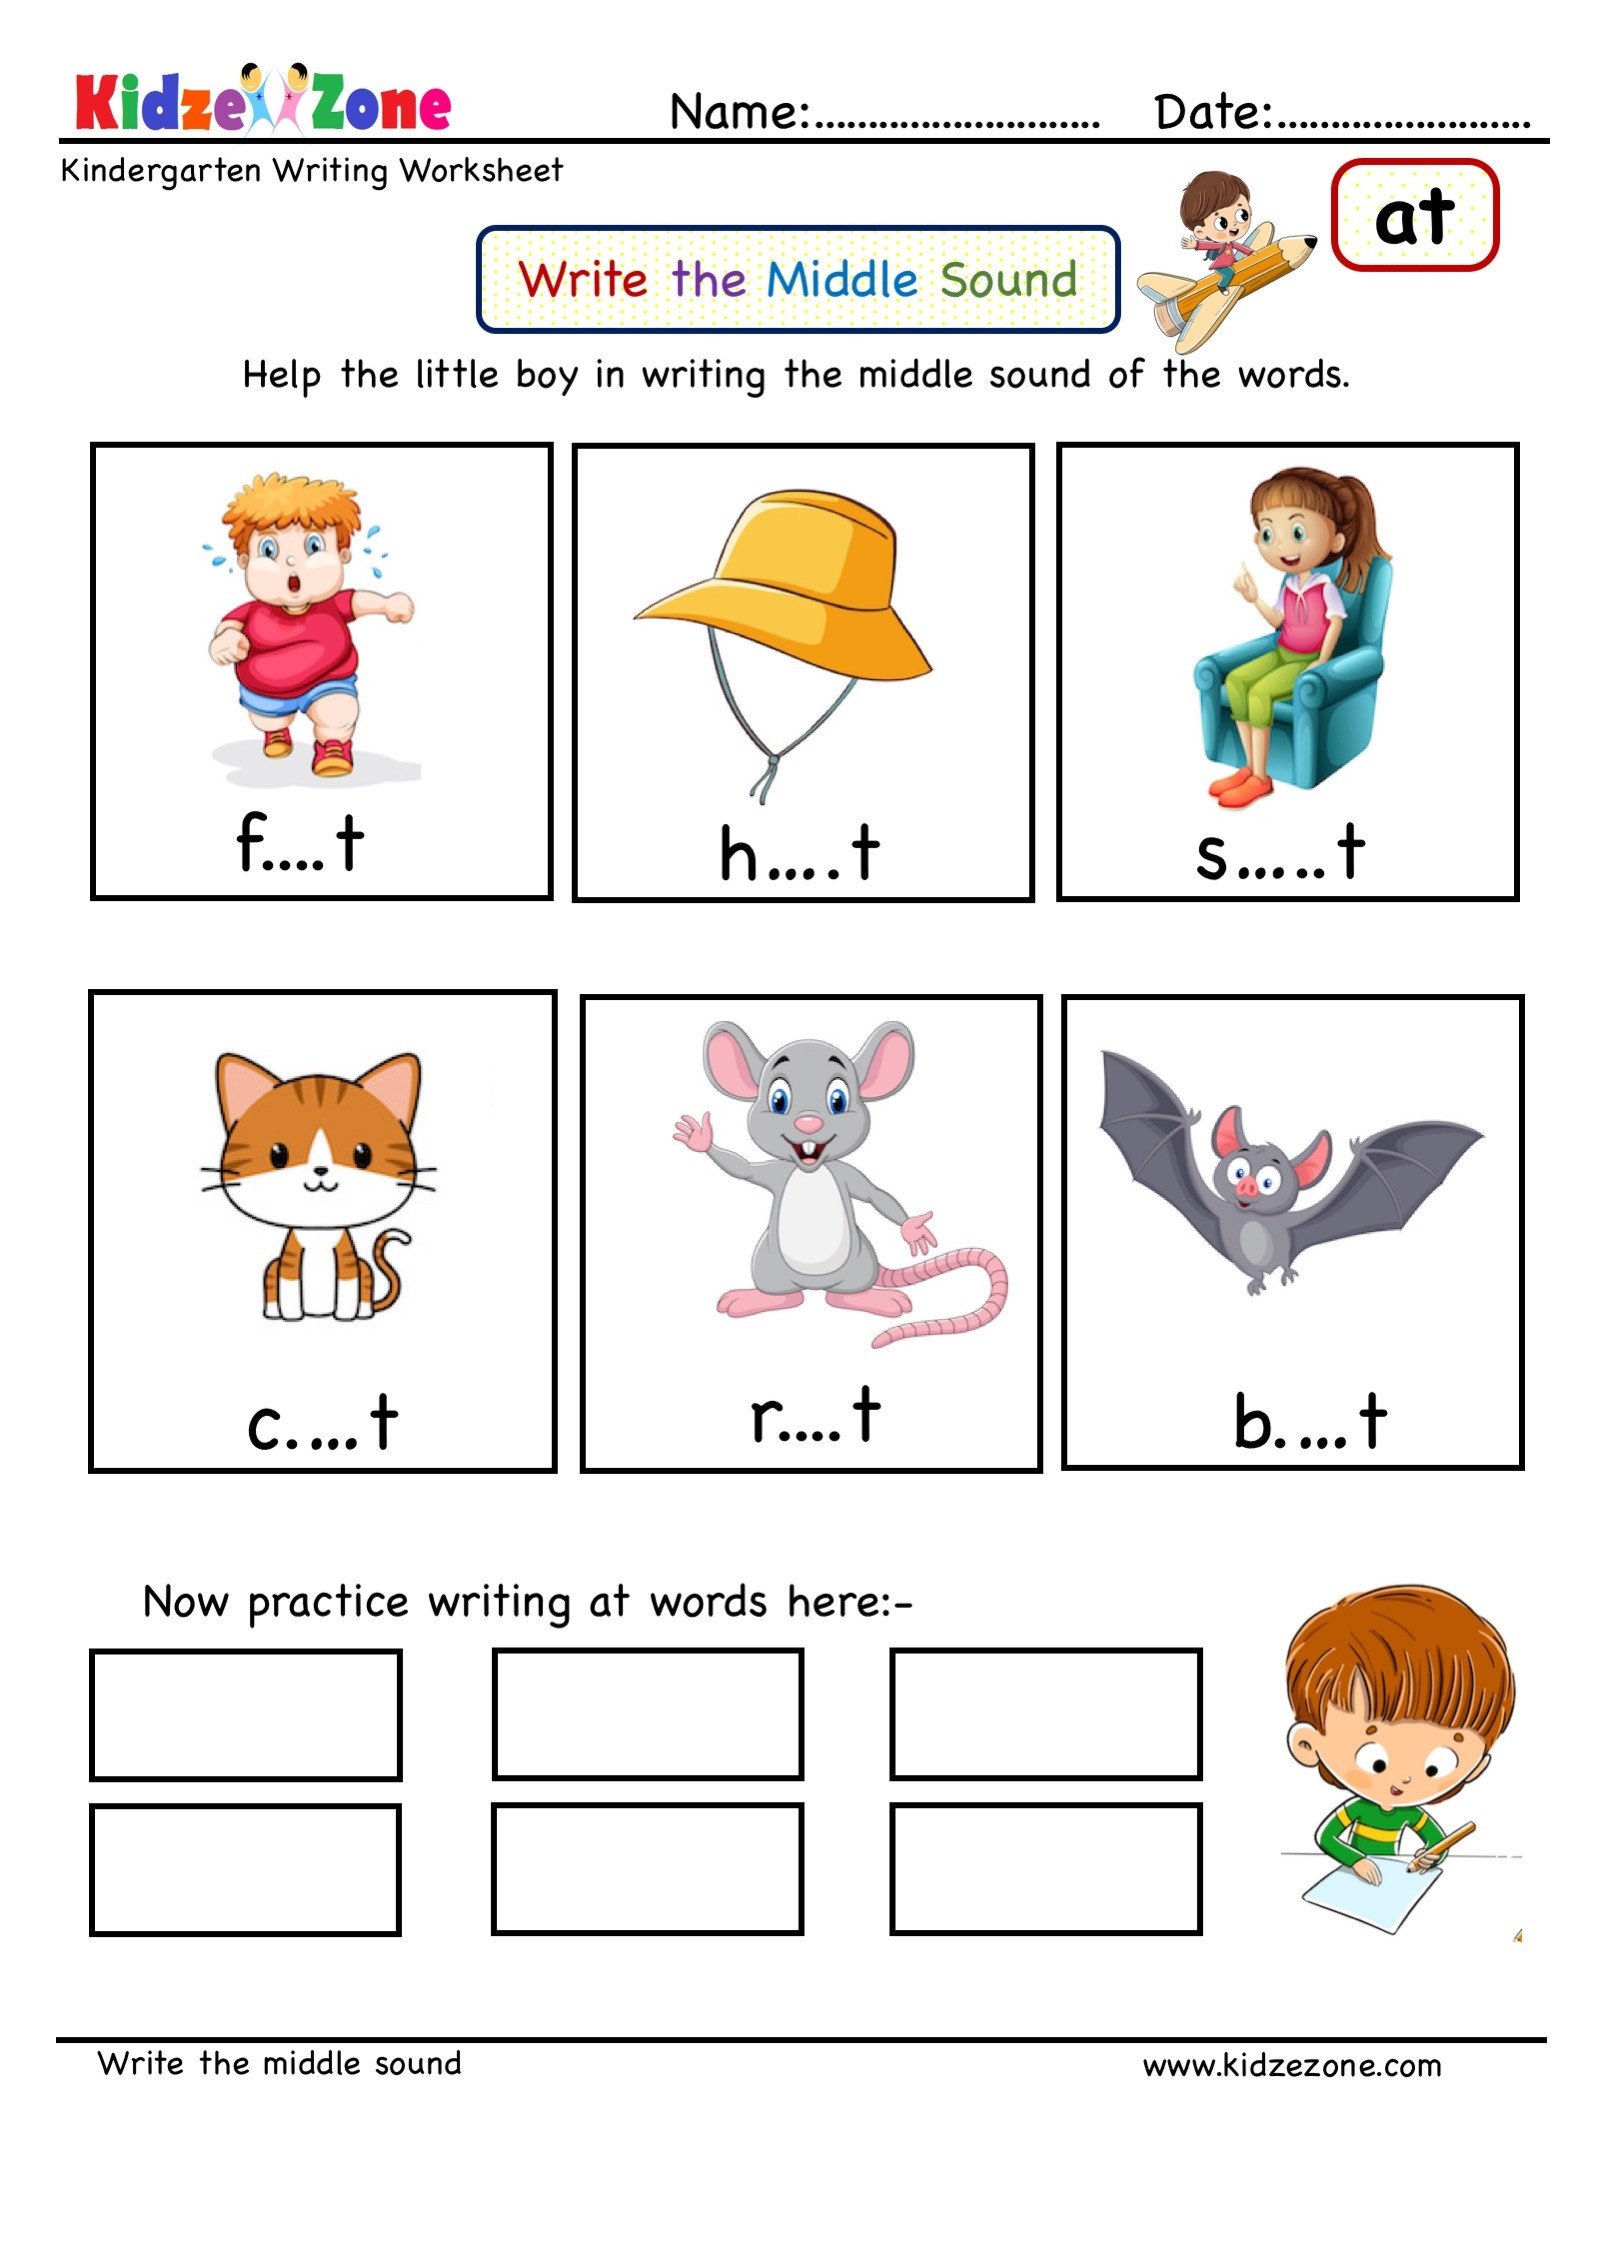 Middle sound Worksheets for Kindergarten Kindergarten Worksheets at Word Family Writing Middle sound